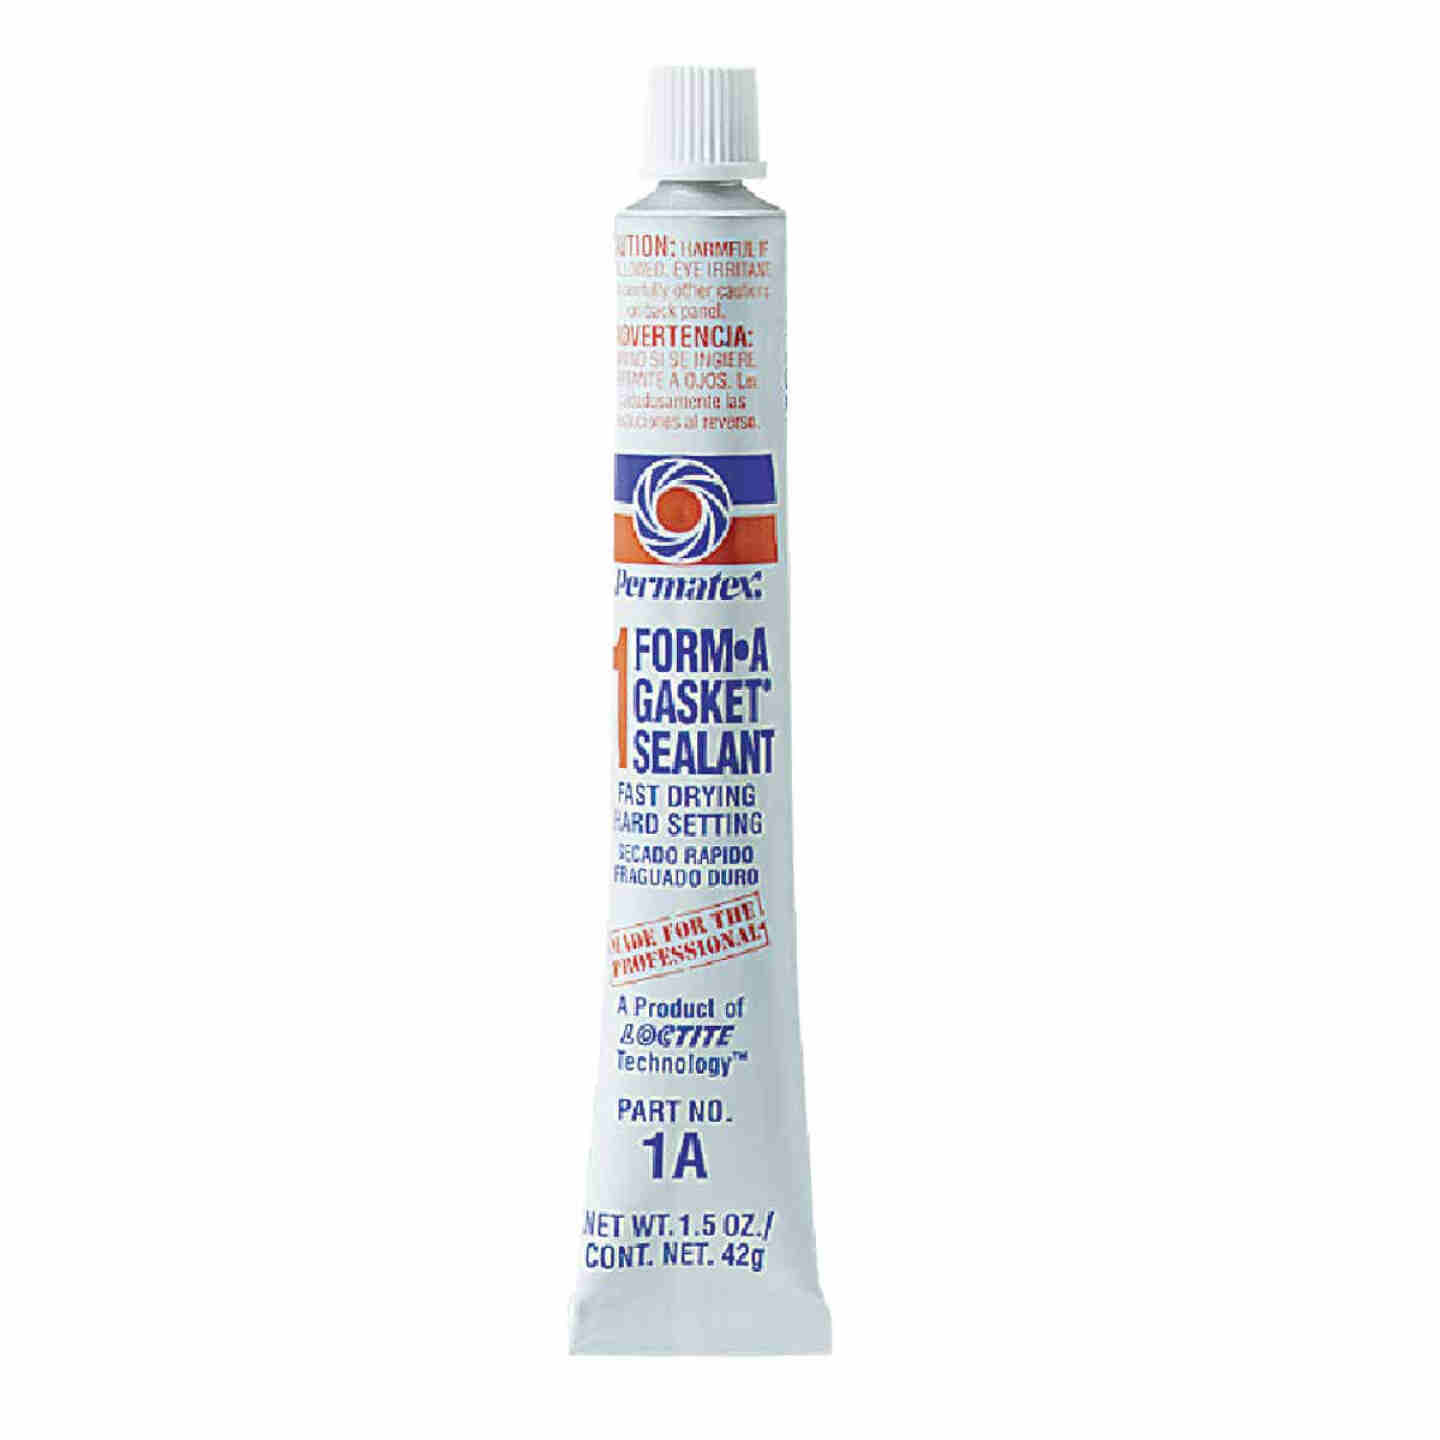 Permatex 1.5 Oz. No. 1 Form-A-Gasket Sealant Image 1